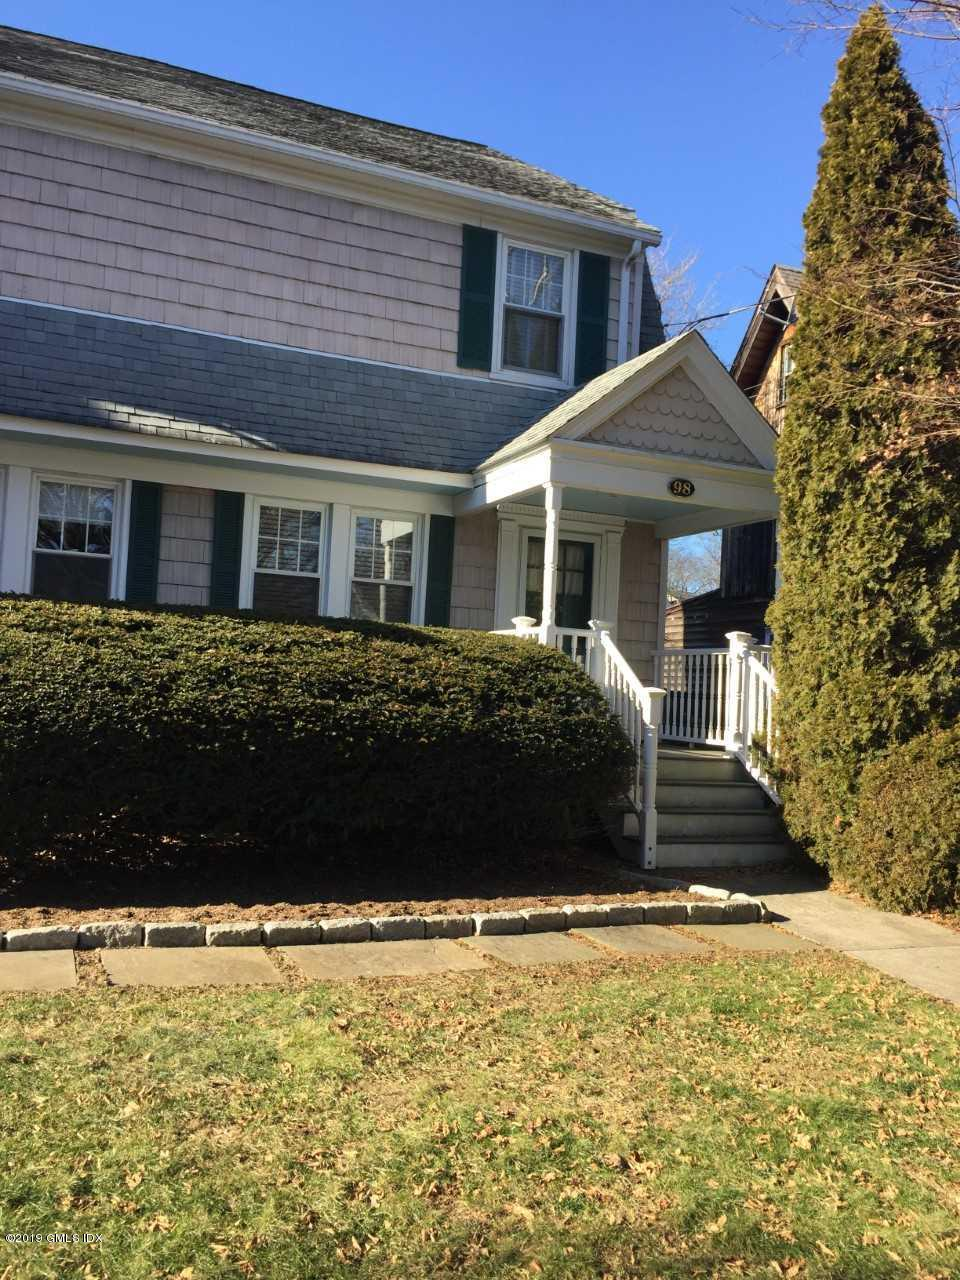 98 Prospect Street,Greenwich,Connecticut 06830,3 Bedrooms Bedrooms,2 BathroomsBathrooms,Condominium,Prospect,105231